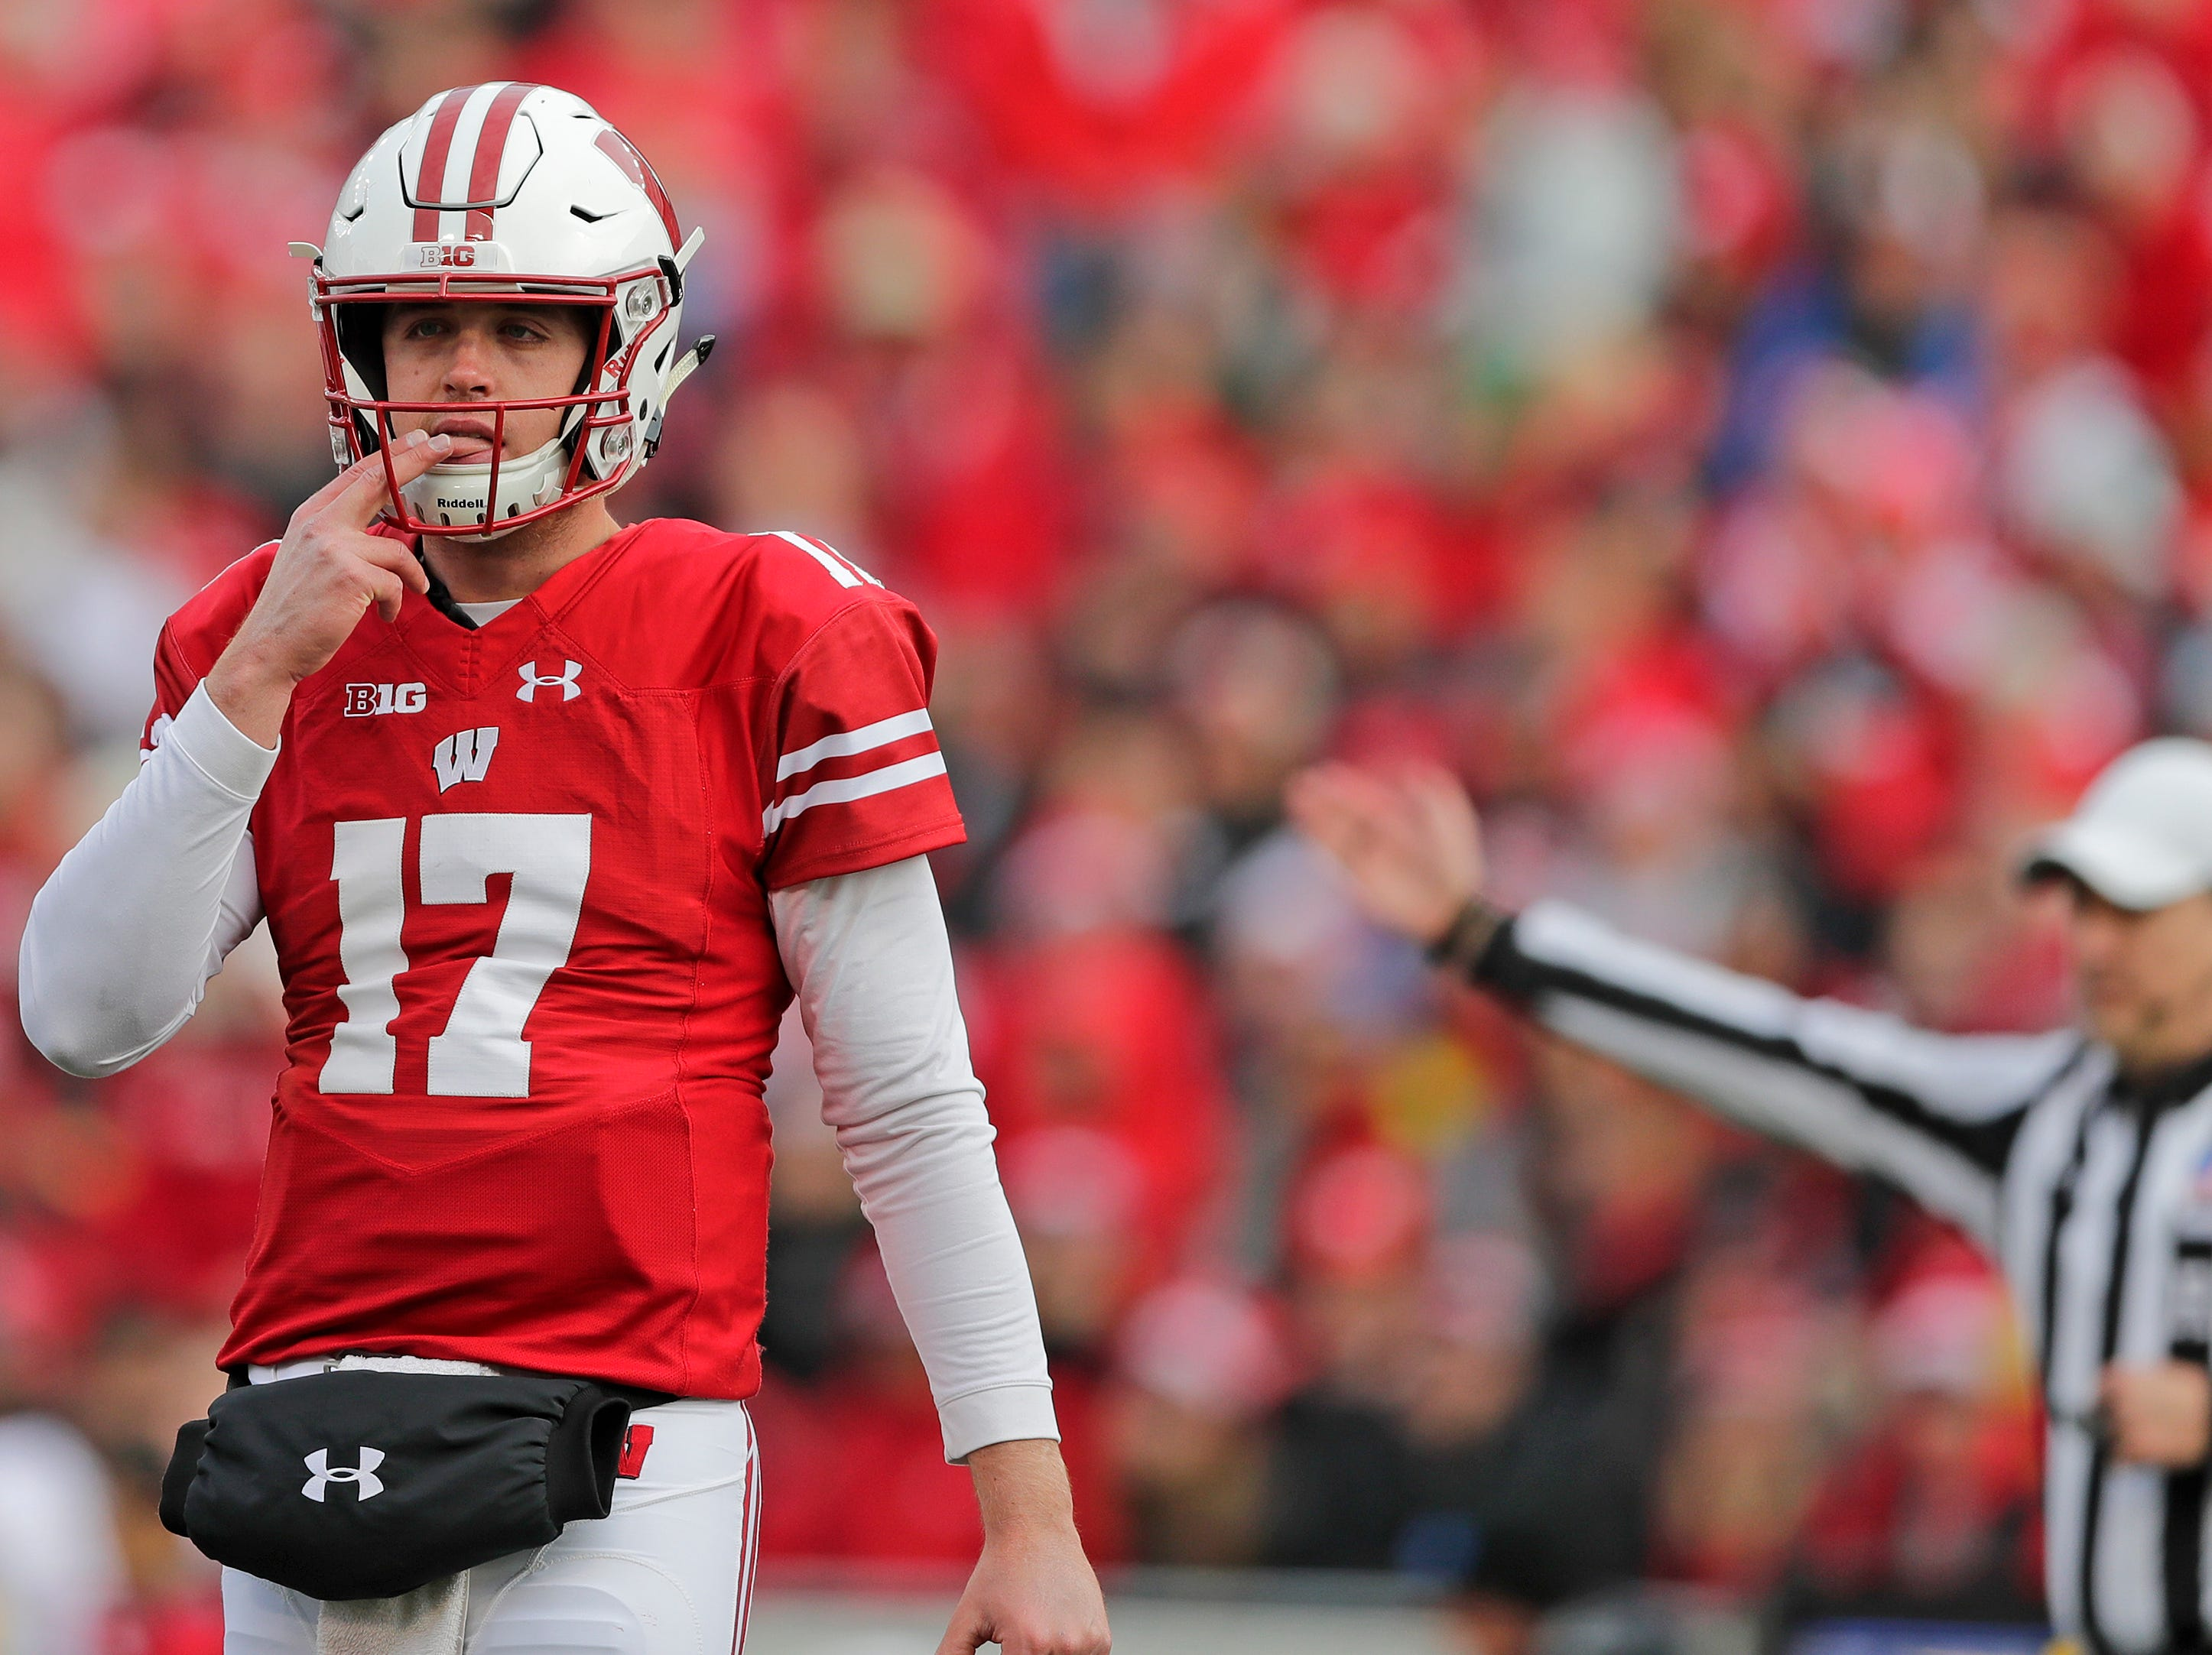 Wisconsin Badgers quarterback Jack Coan (17) looks to the sideline during the third quarter of a Big Ten football game at Camp Randall Stadium on Saturday, November 3, 2018 in Madison, Wis.Adam Wesley/USA TODAY NETWORK-Wisconsin